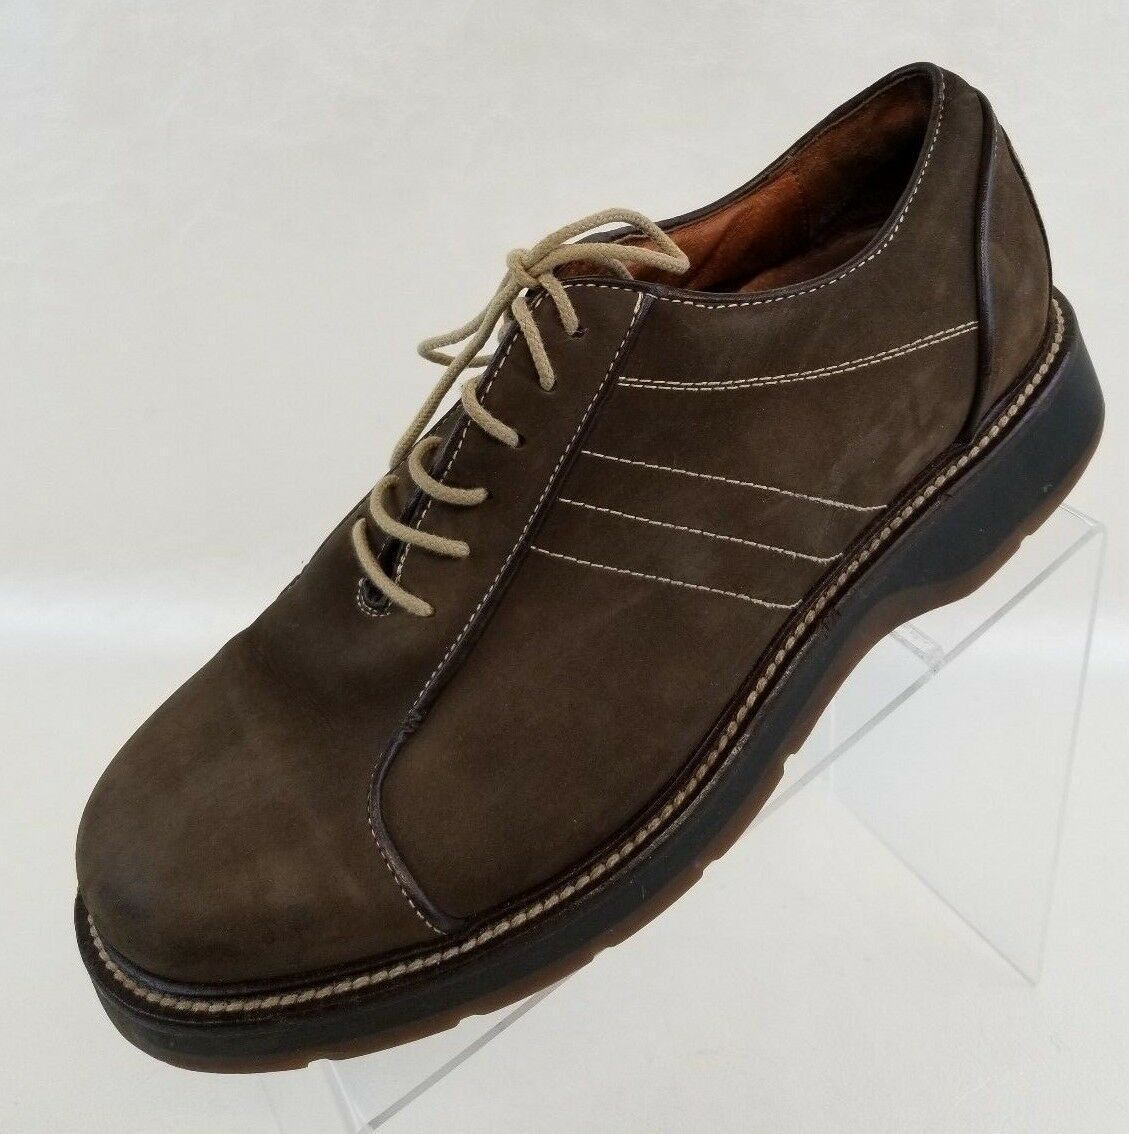 Johnston Murphy Oxford Brown Nubuck Leather Lace Up Mens shoes  Size 10.5M